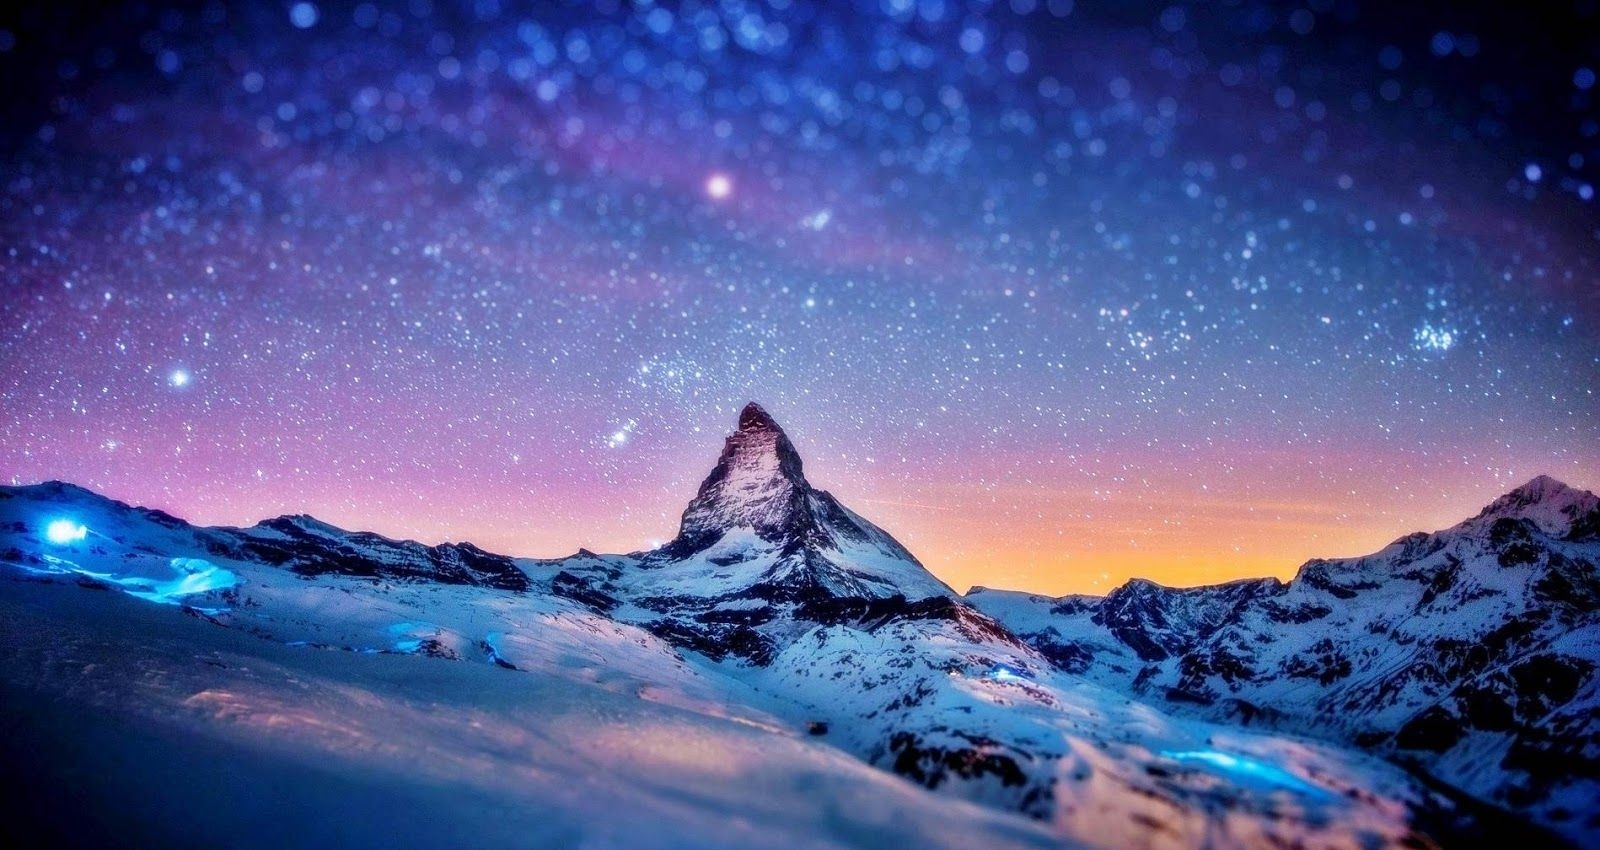 snow mountain wallpaper hd | snow mountain in night | places to